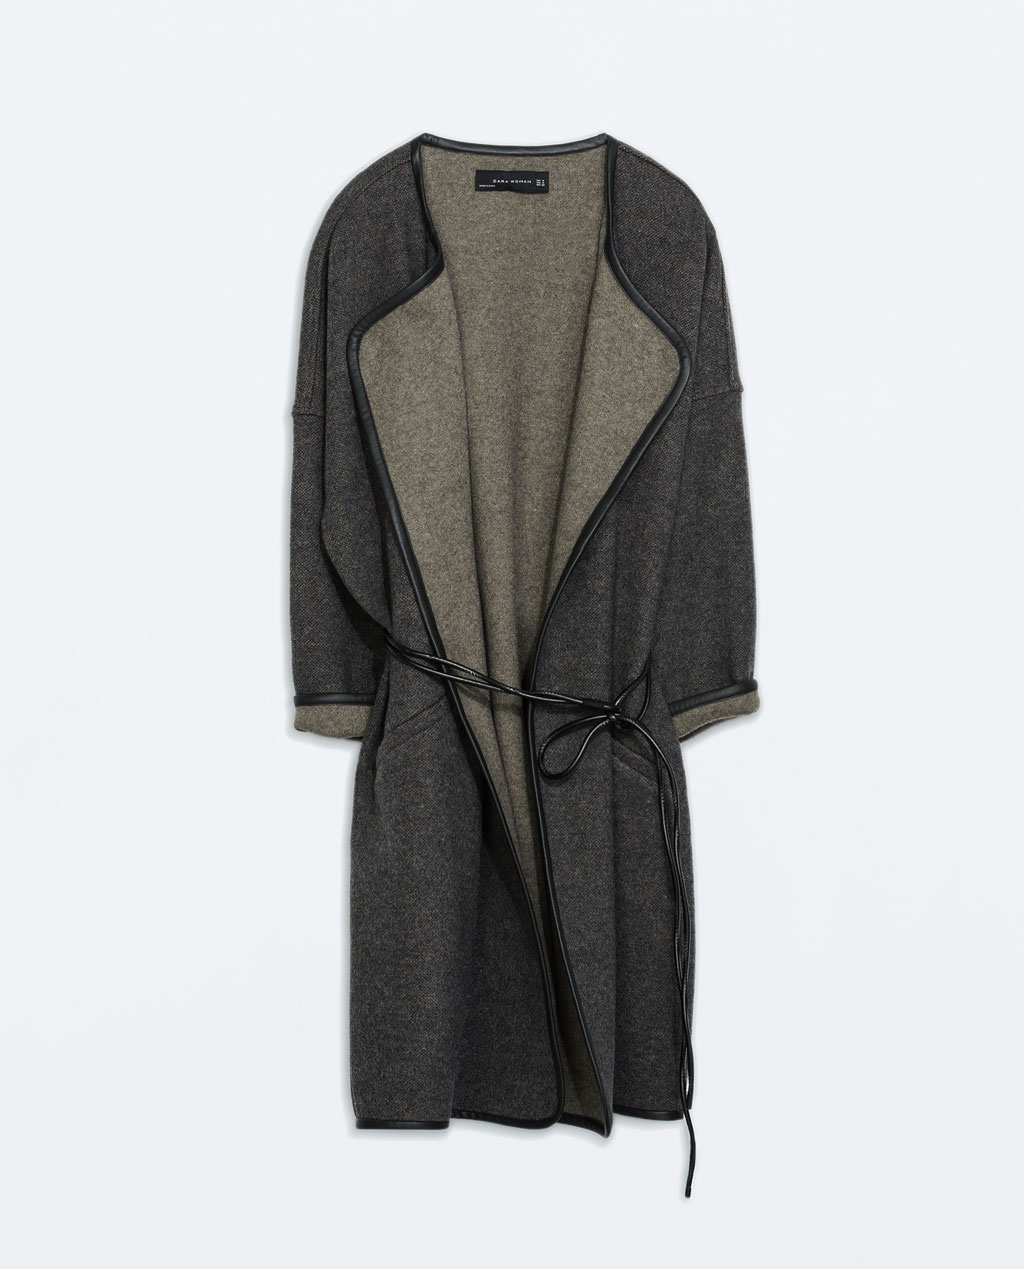 http://www.zara.com/uk/en/woman/outerwear/faux-leather-belted-coat-with-piping-c269183p1983622.html